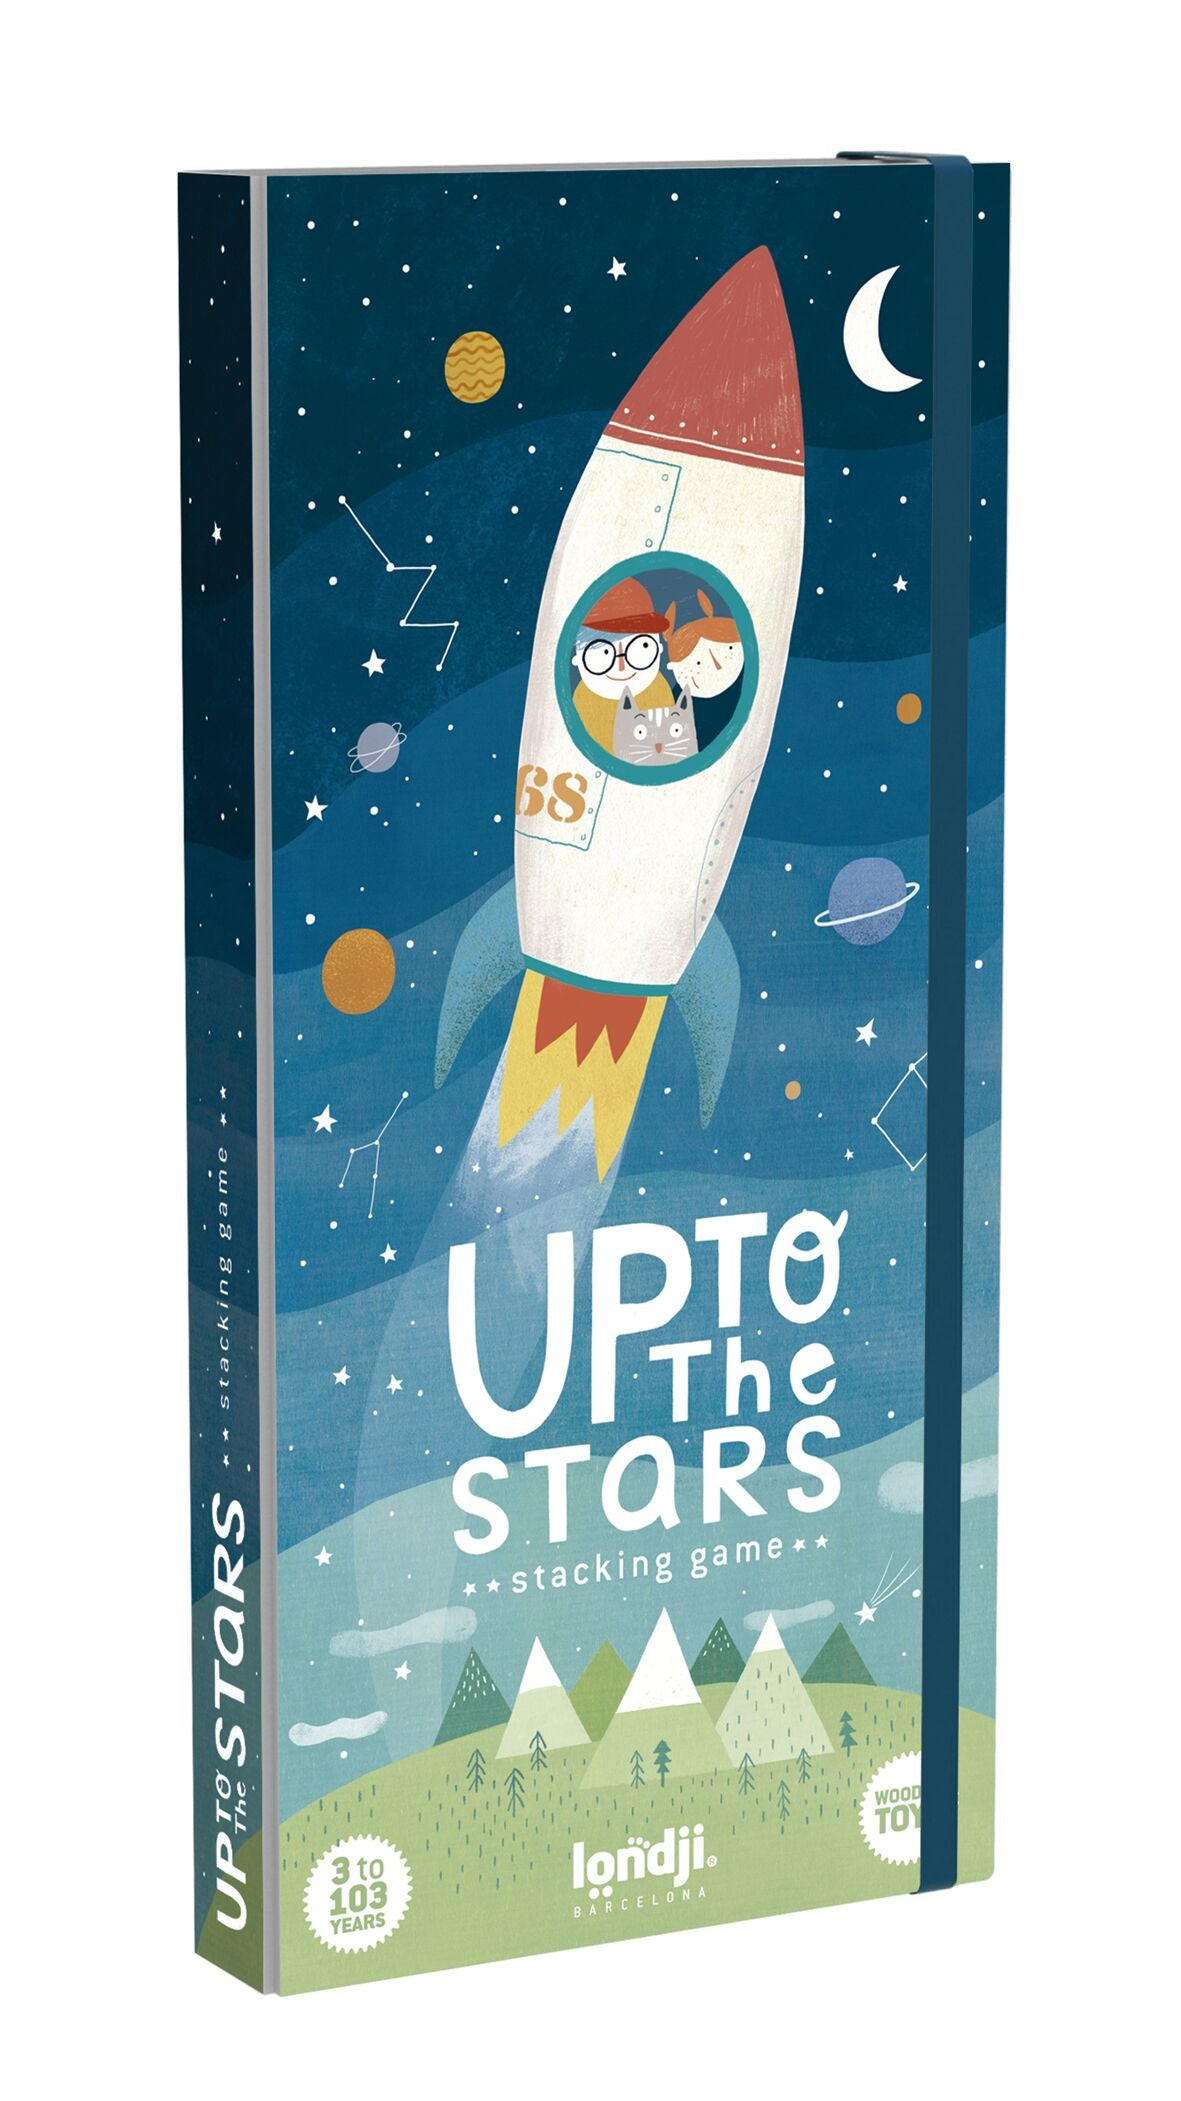 Spel, hout, Up to the stars - Londji